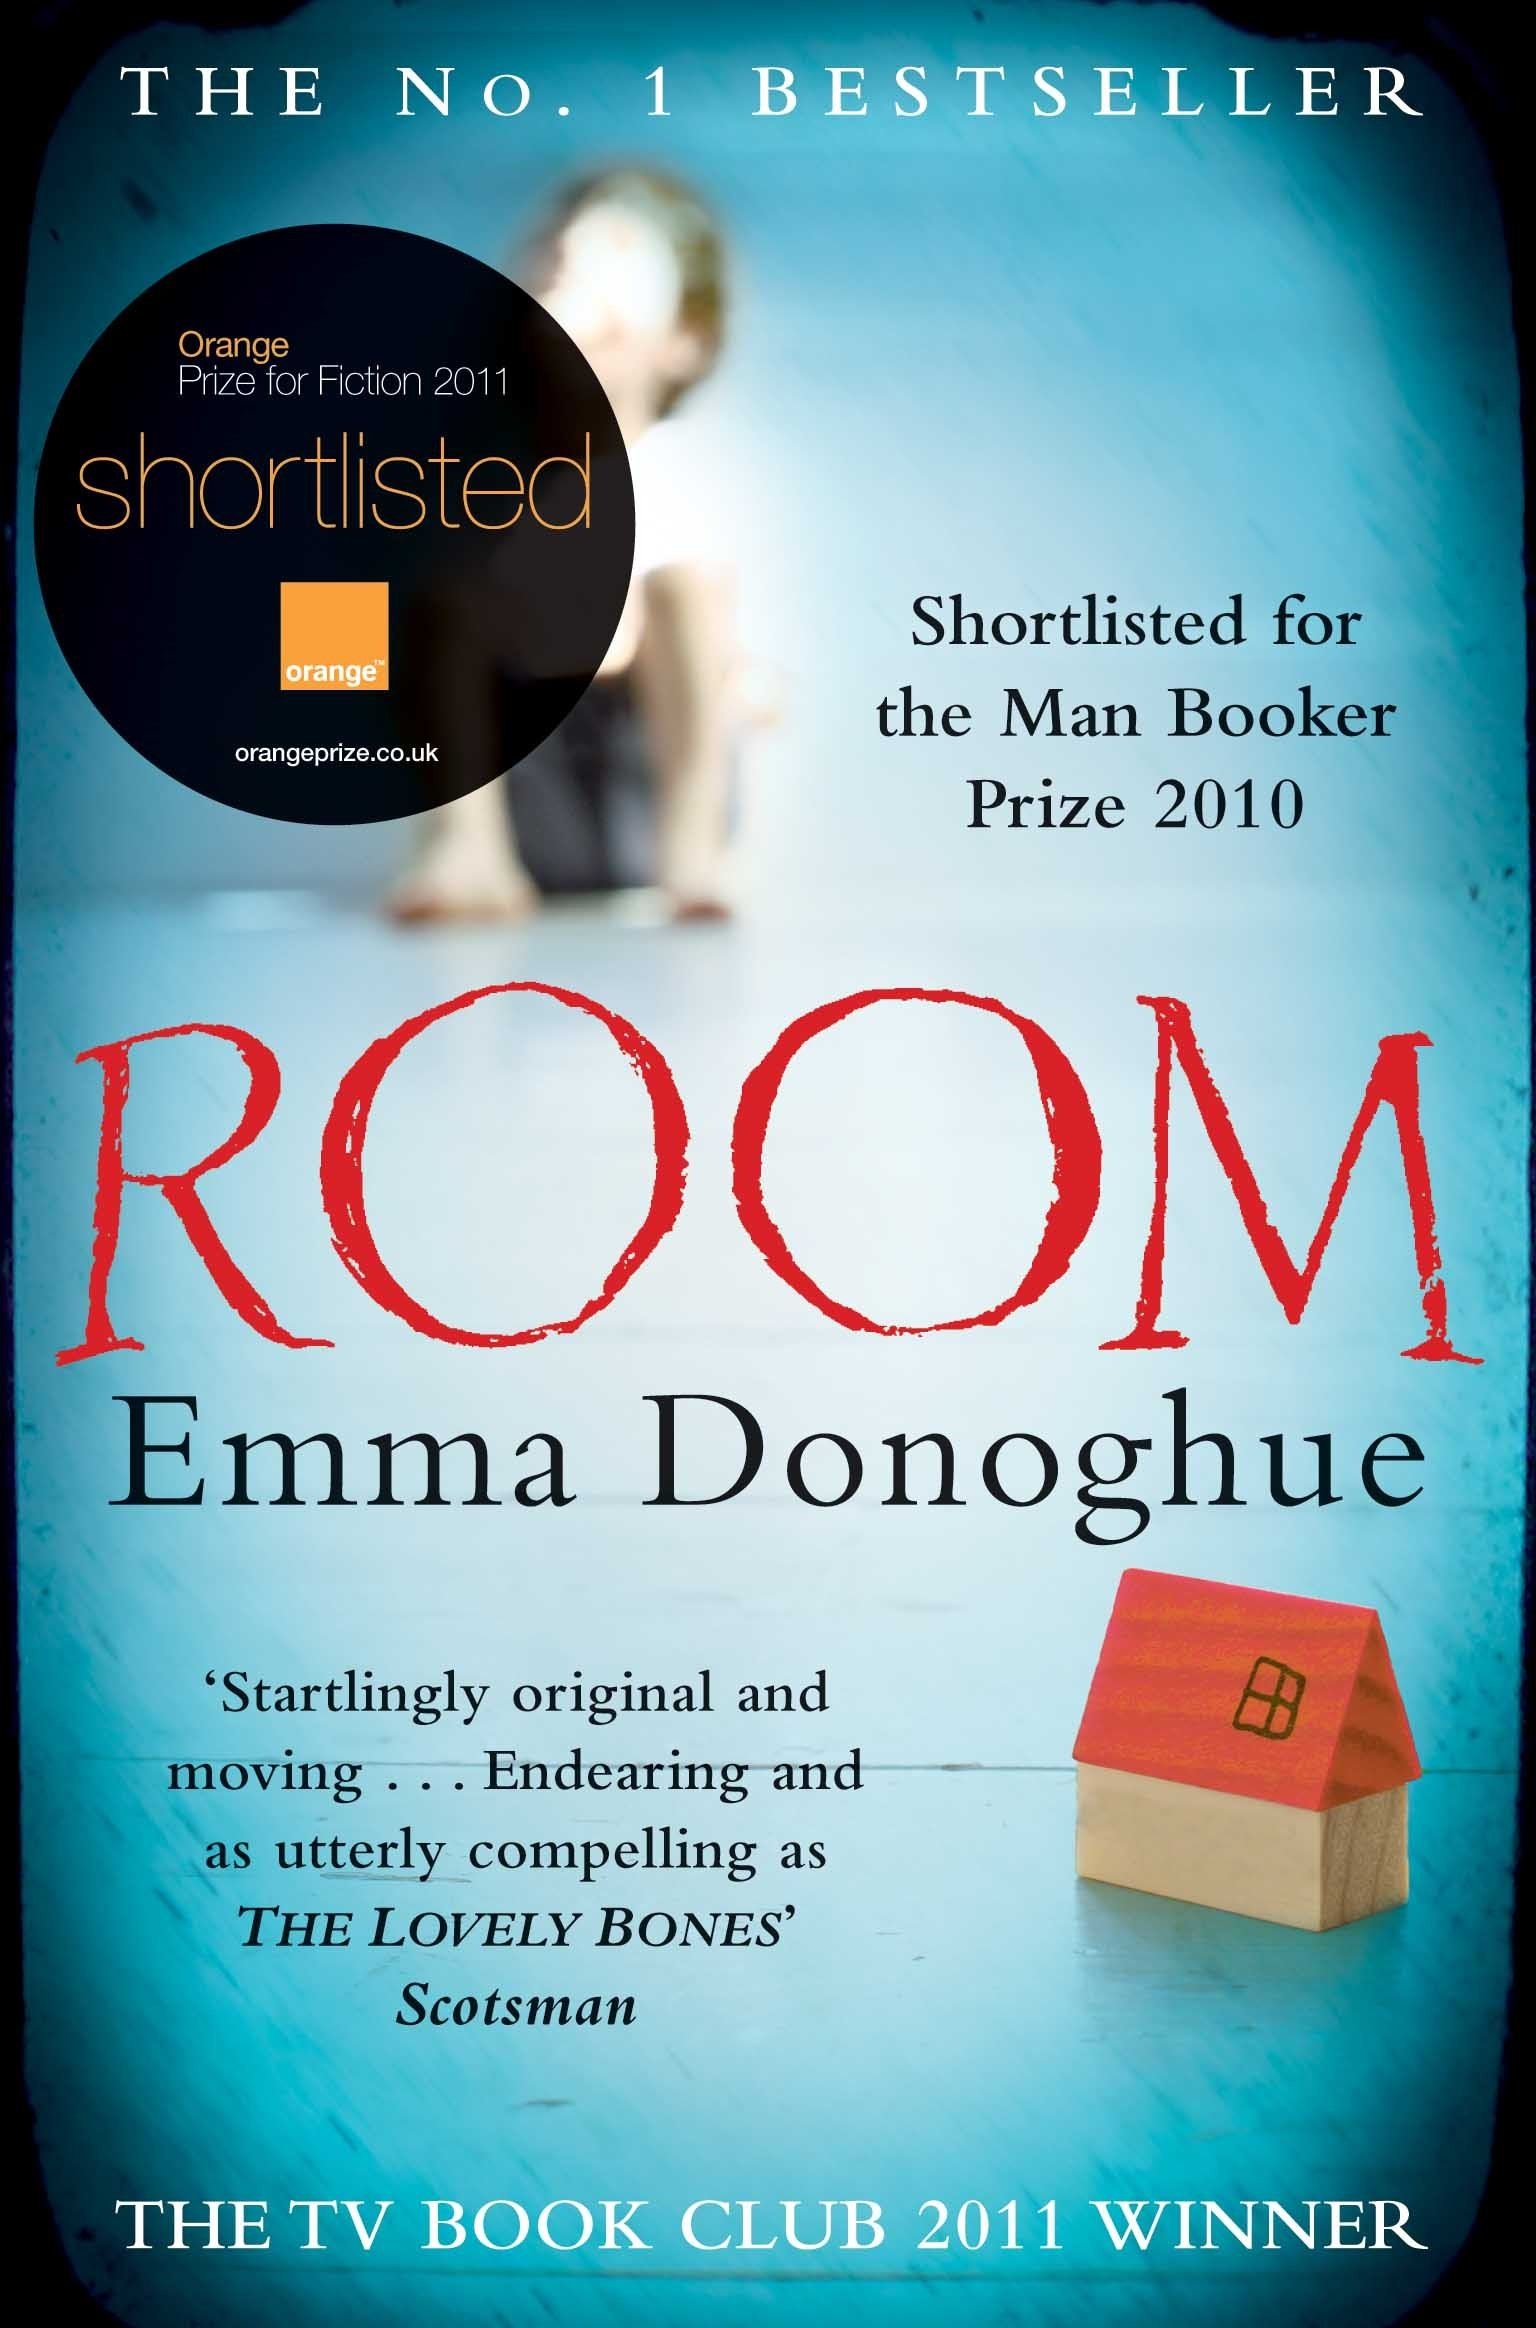 an analysis of the novel room by emma donoghue This is the summary of room: a novel by emma donoghue.